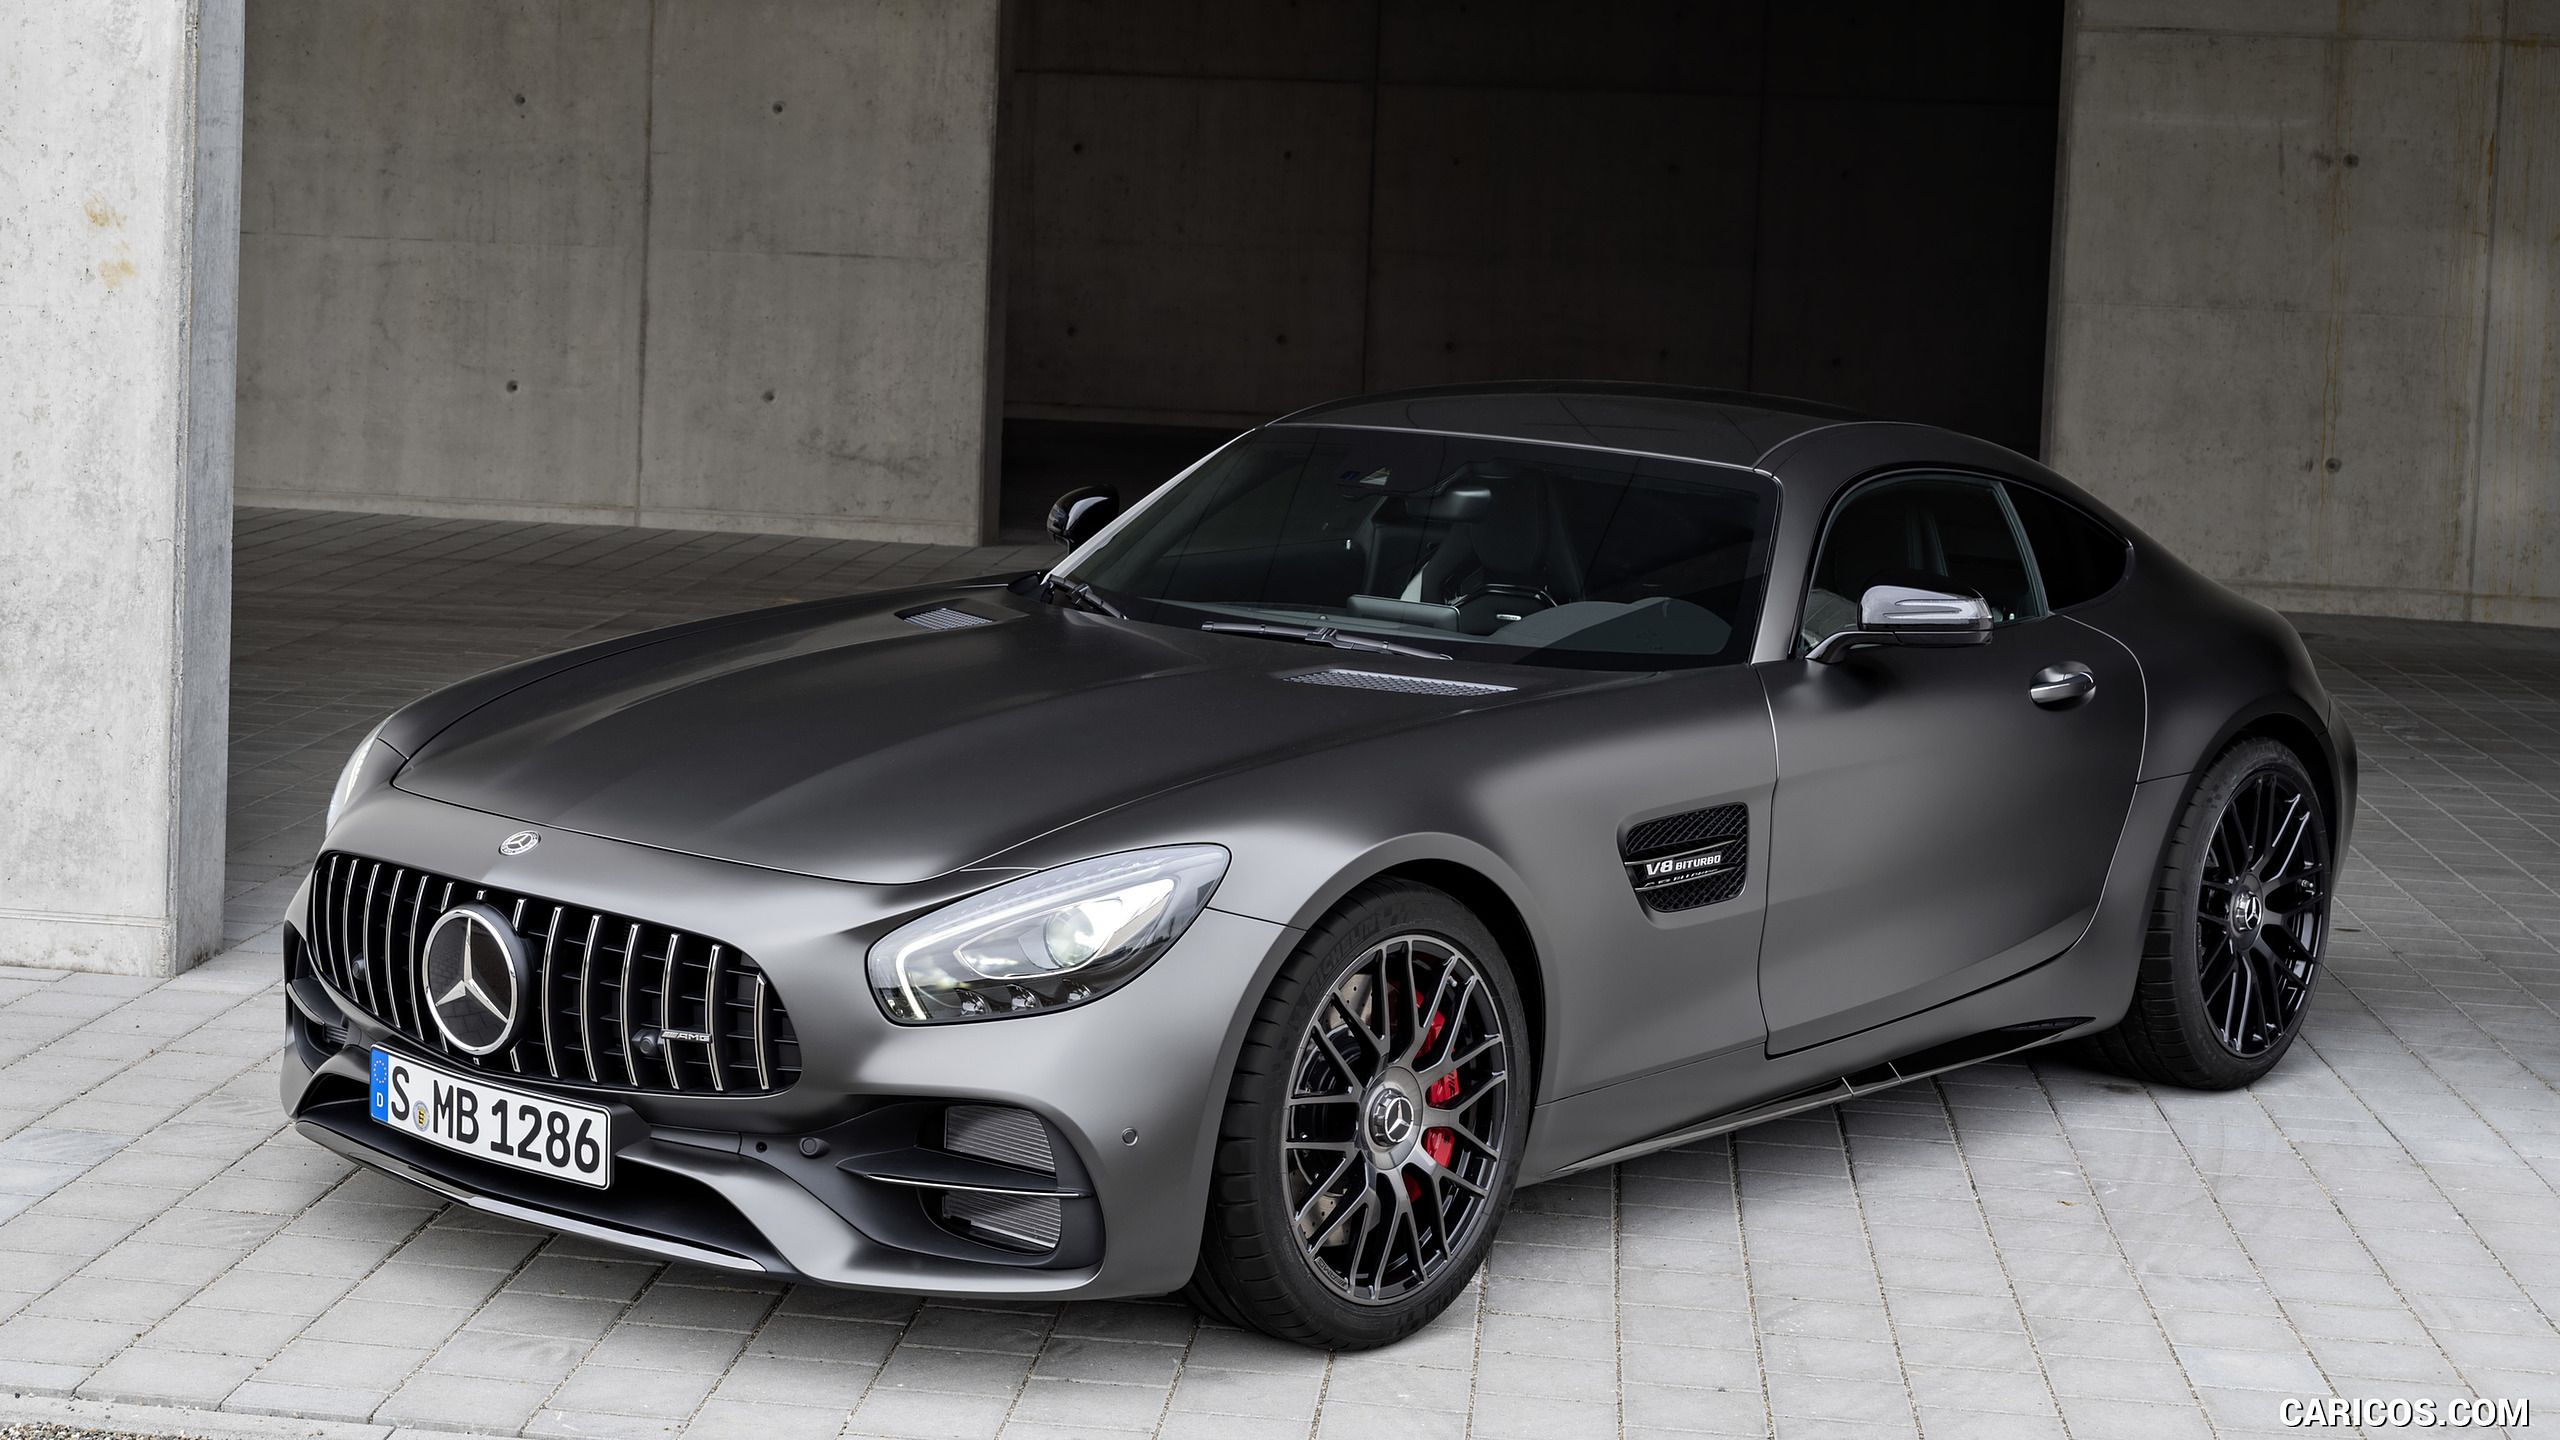 2018 Mercedes-AMG GT C Edition 50 Wallpaper | Wallpaper ...